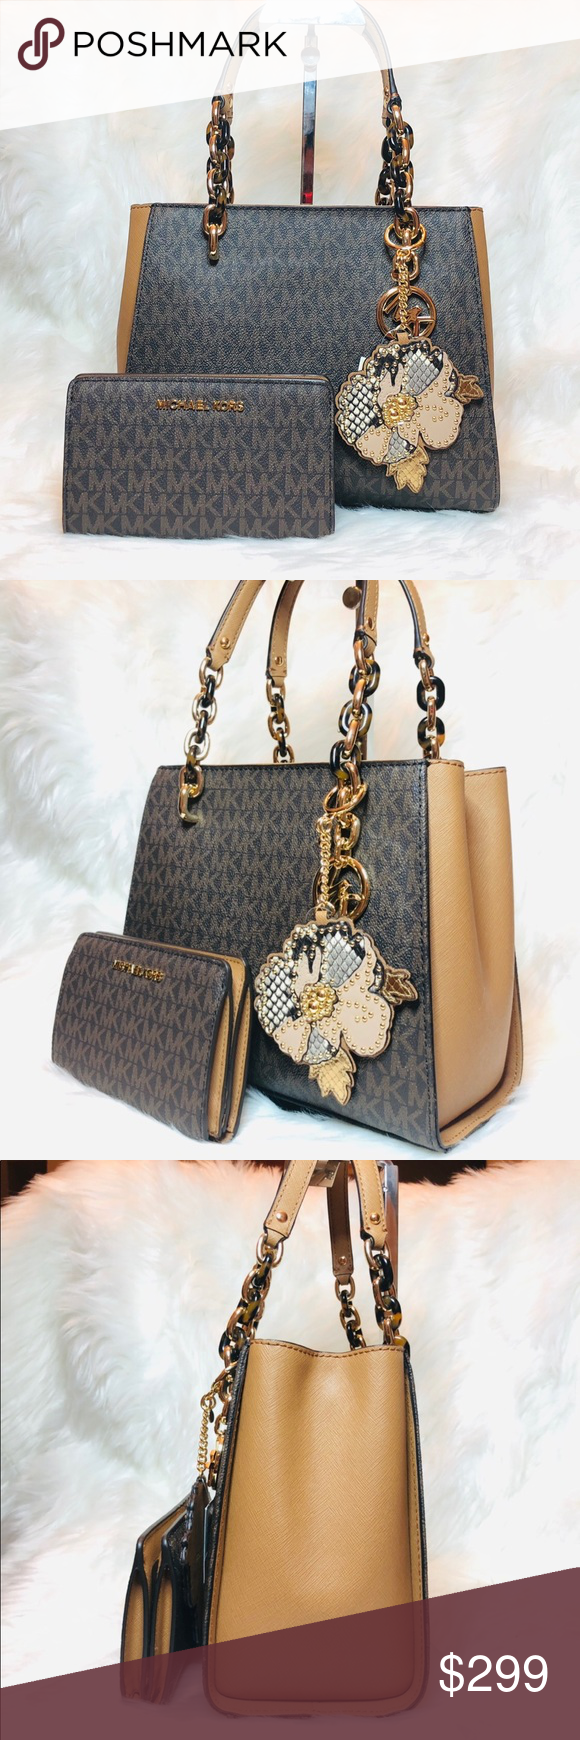 94d492850115 Spotted while shopping on Poshmark  3PCS Michael Kors Sofia Tote Wallet  Leather Charms!  poshmark  fashion  shopping  style  Michael Kors  Handbags